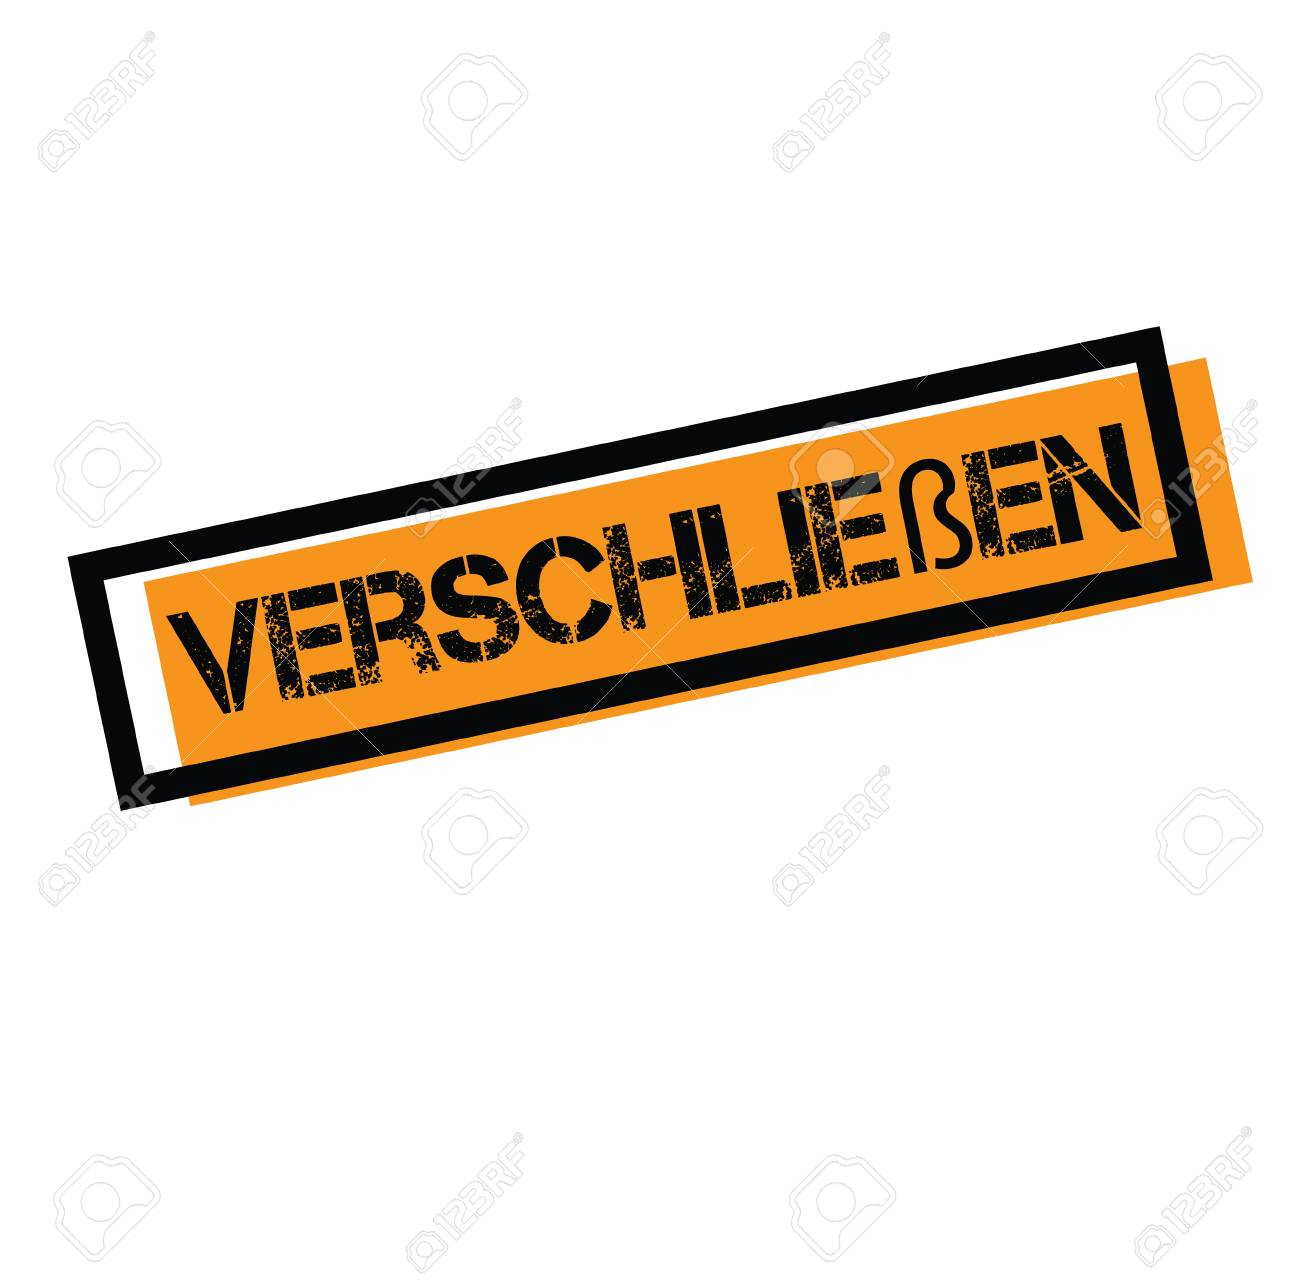 Shut Up Stamp In German Royalty Free Cliparts Vectors And Stock Illustration Image 107426657